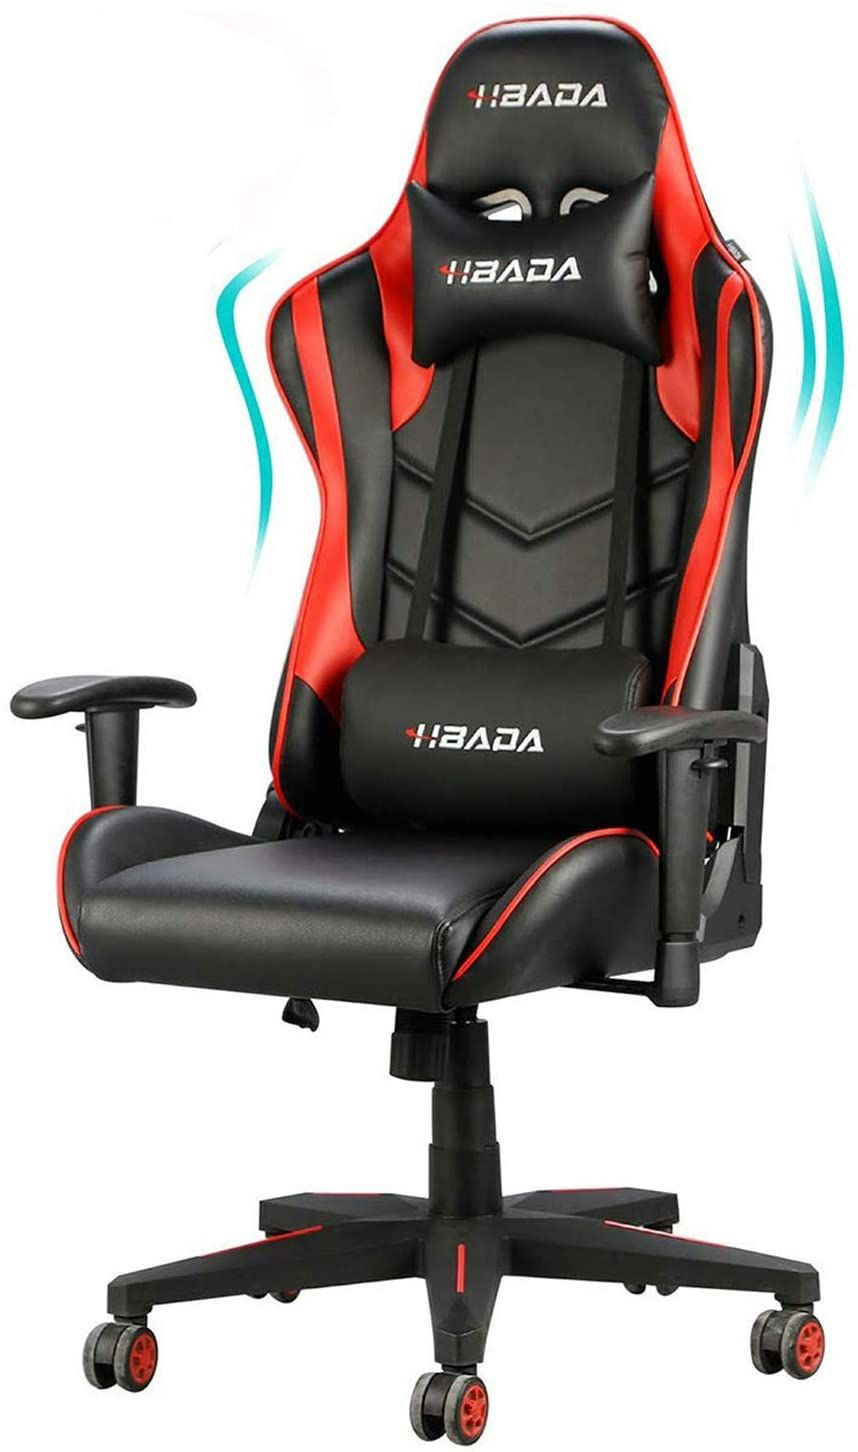 Hbada Gaming Chair Racing Style Ergonomic High Back Computer Chair With Height Adjustment Headrest In 2020 Computer Chair Gaming Chair Gamer Chair